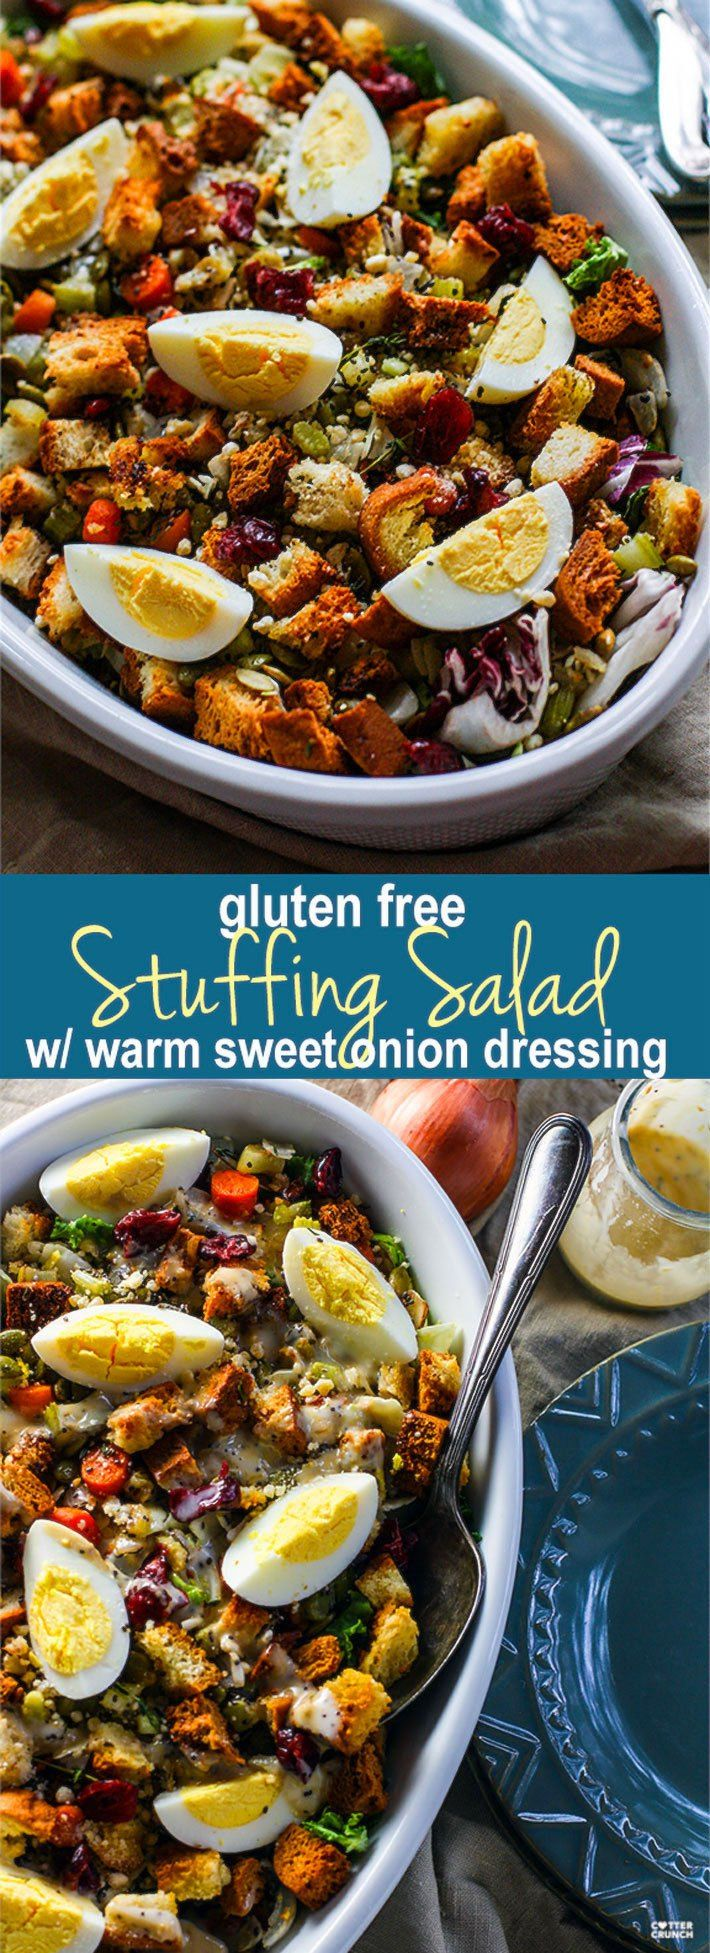 Gluten Free Stuffing Salad with Sweet Onion Dressing! A Gluten Free Stuffing recipe with a twist! This easy Holiday side dish combines the comfort food of traditional stuffing with a healthy winter salad! All tossed together in no time and served with a warm sweet onion dressing. LIght, Healthy, and full of flavor. Just like traditional stuffing! @cottercrunch